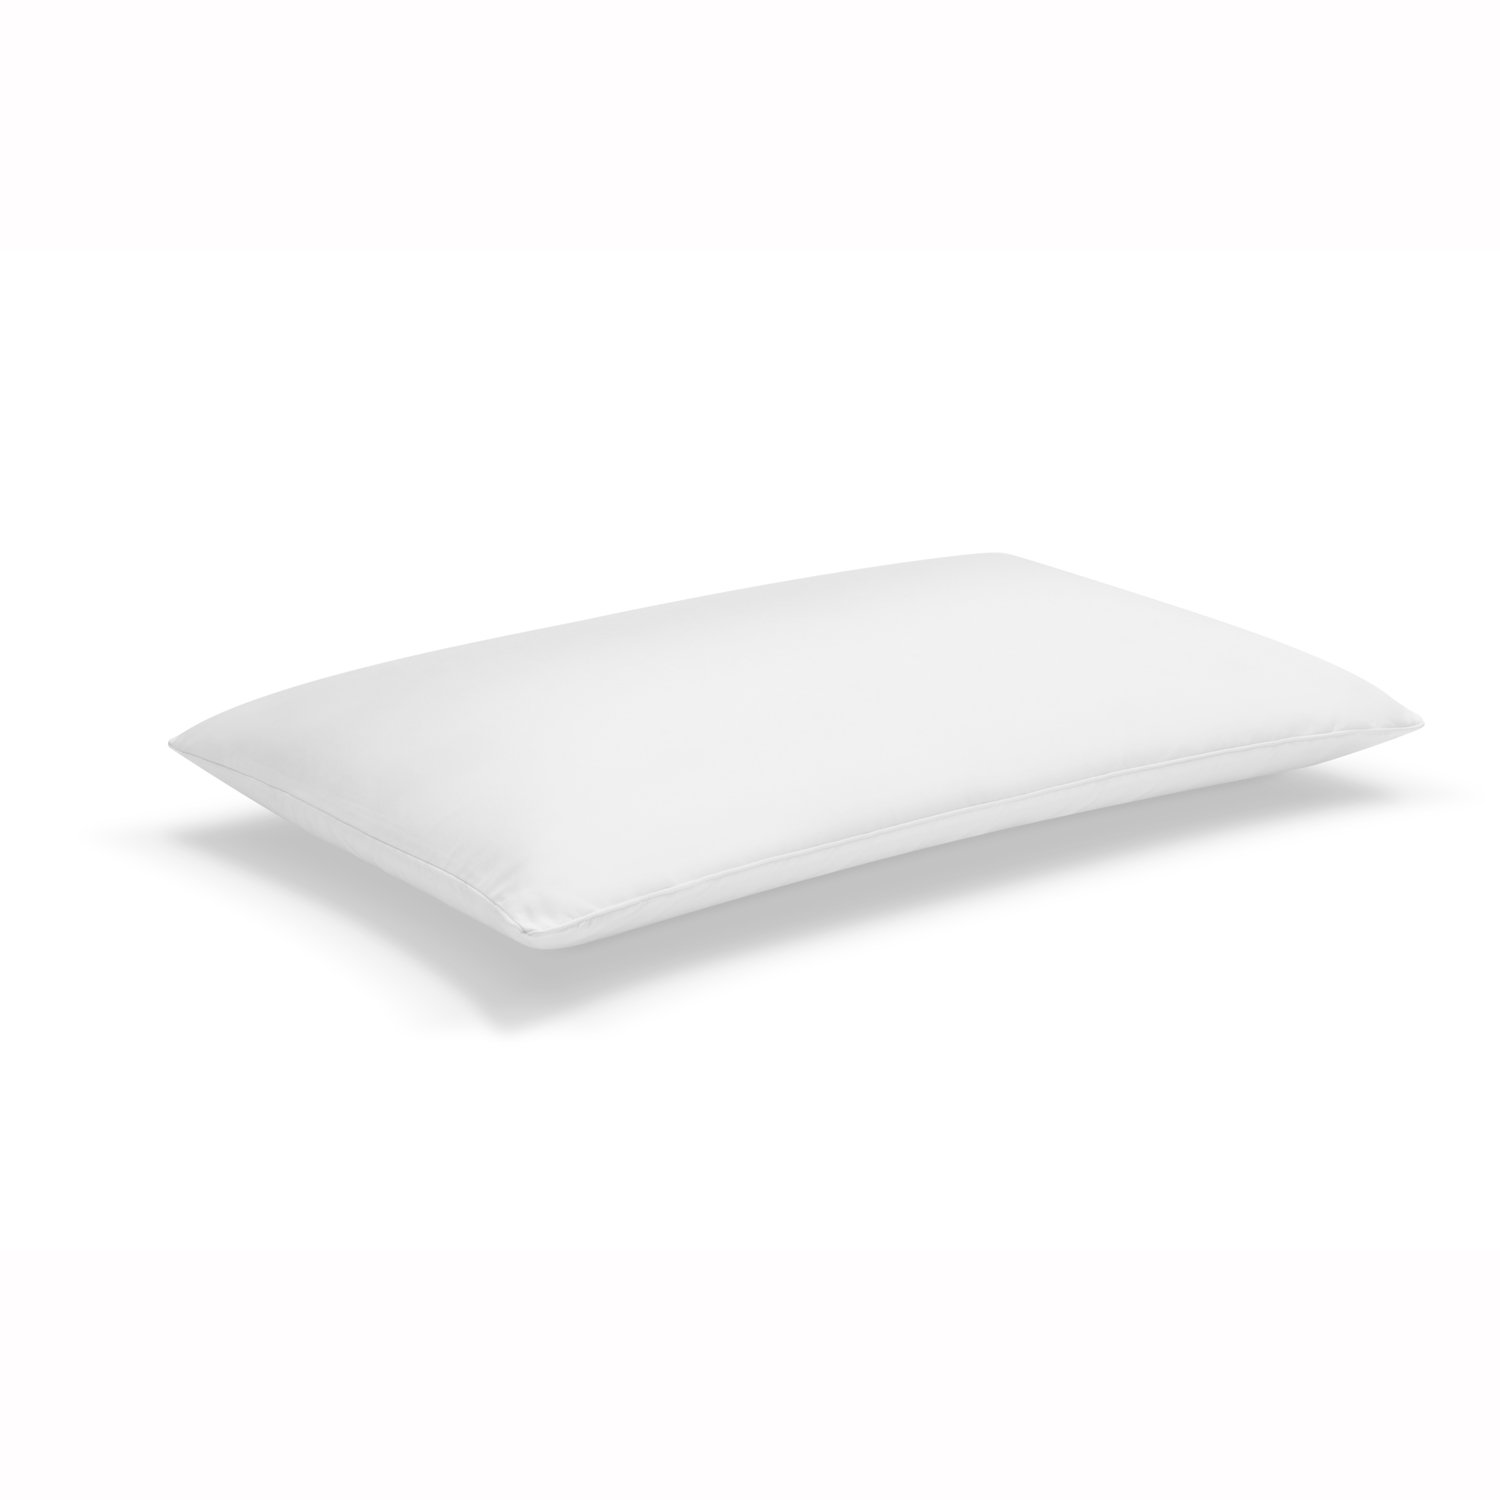 Sleep Innovations Classic Memory Foam Pillow with Microfiber Cover, Made in the USA with a 5-Year Warranty - Standard Size by Sleep Innovations